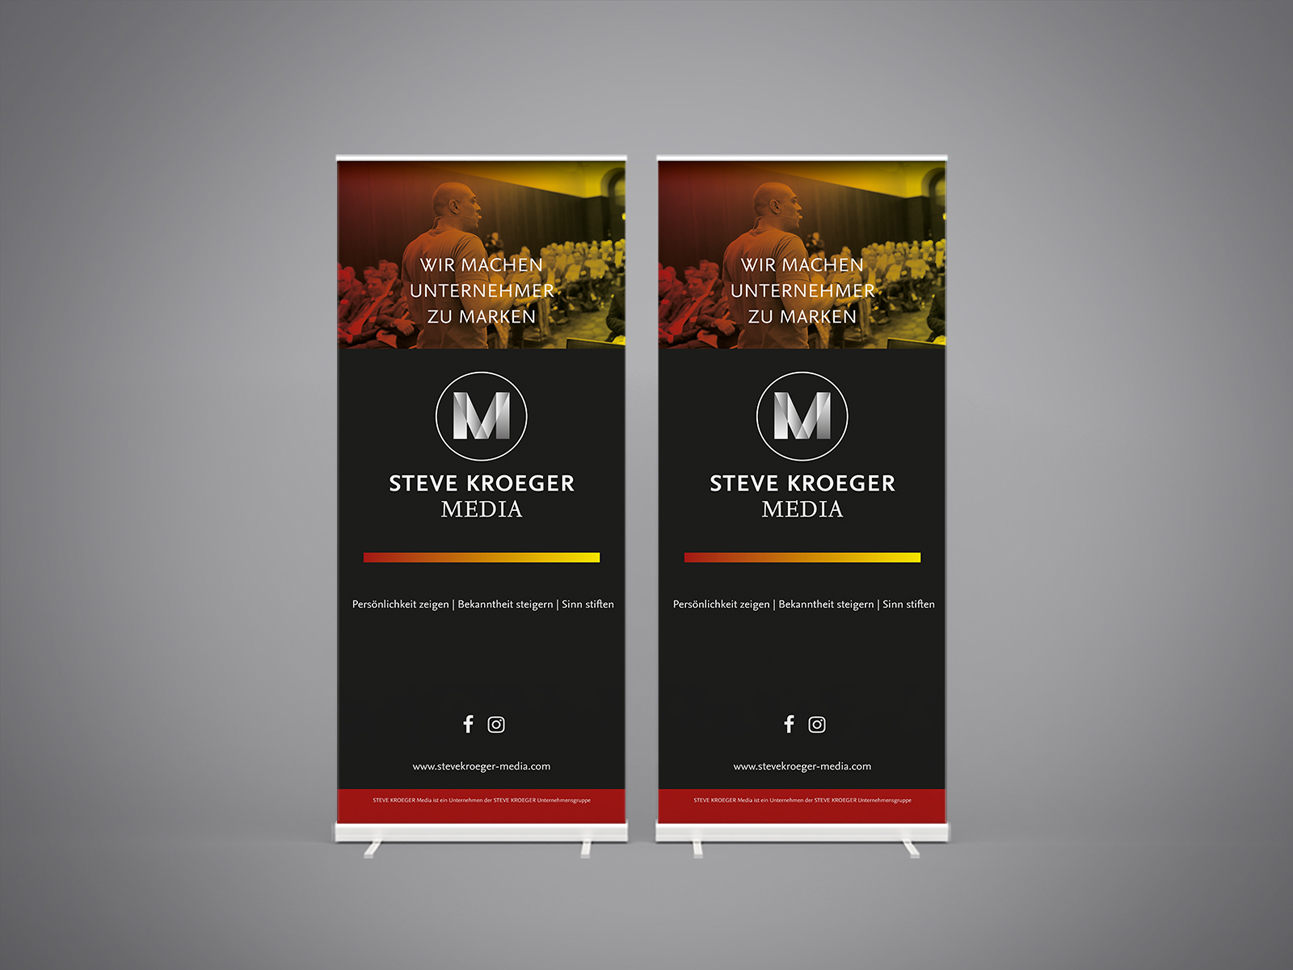 martin zech design, corporate design, steve kroeger media, rollup